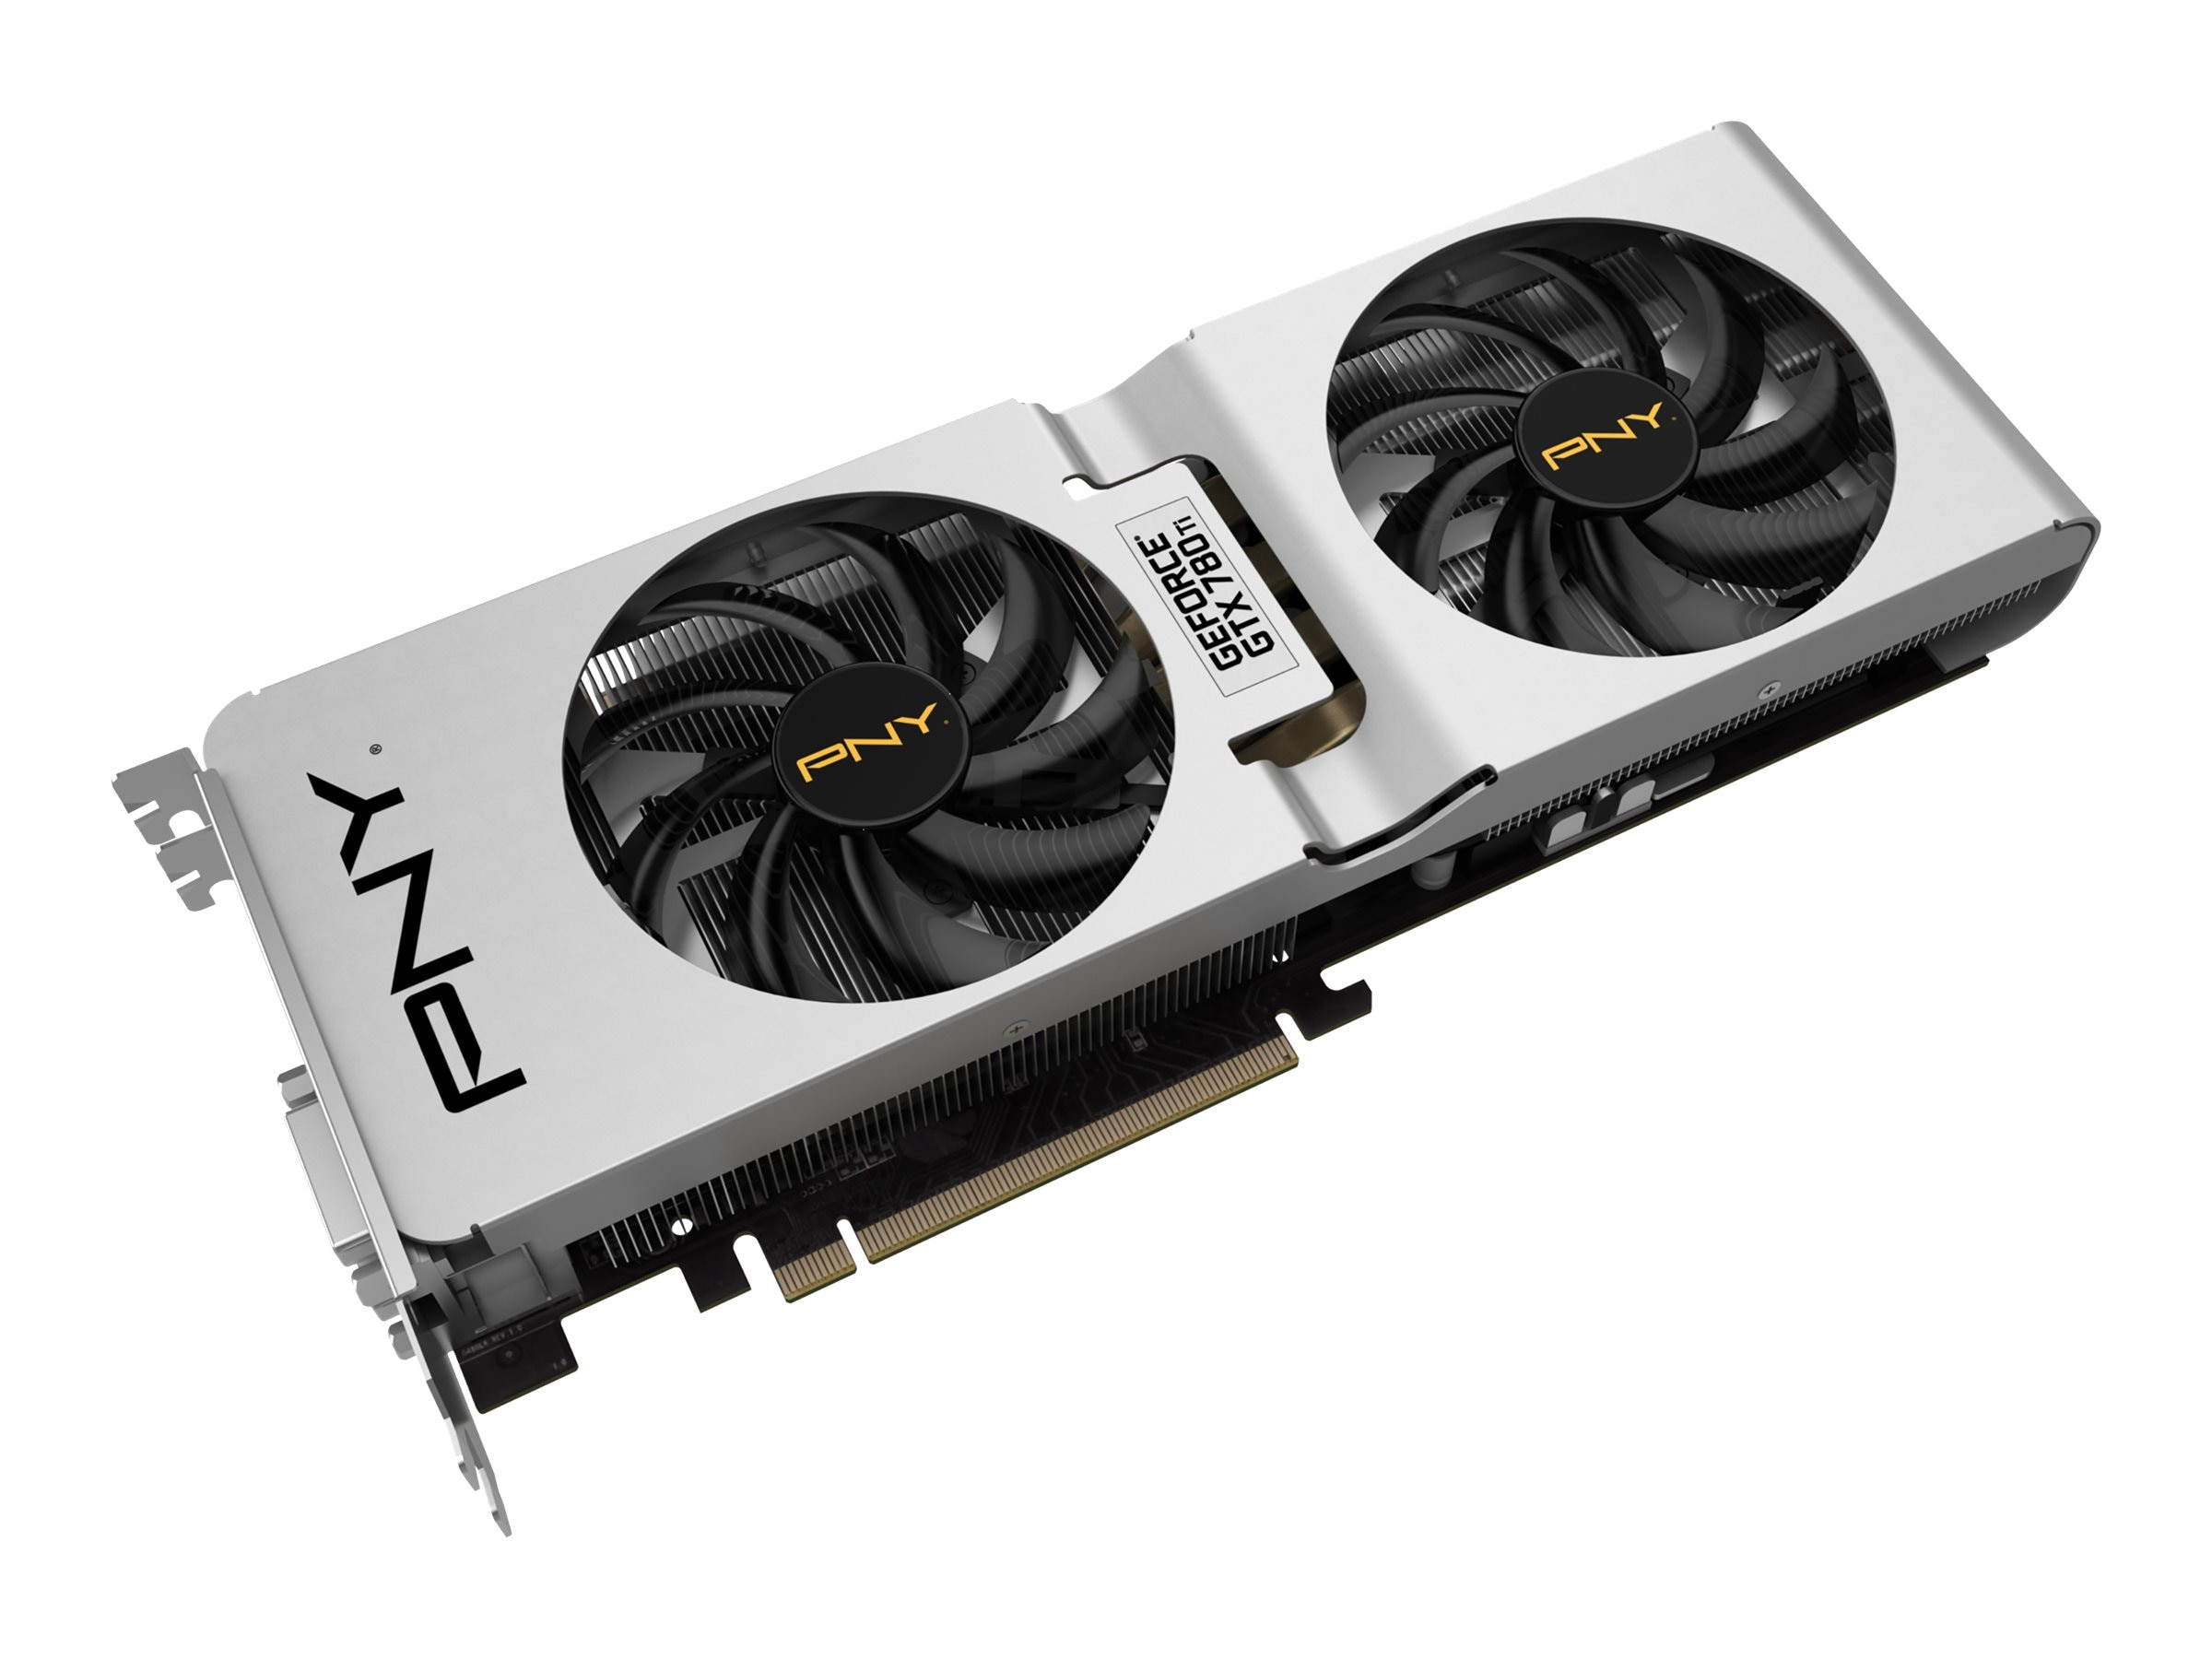 PNY GeForce GTX 780 Ti PCIe 3.0 Overclocked Custom Cooled Graphics Card, 3GB GDDR5, VCGGTX780T3XPB-CC-OC